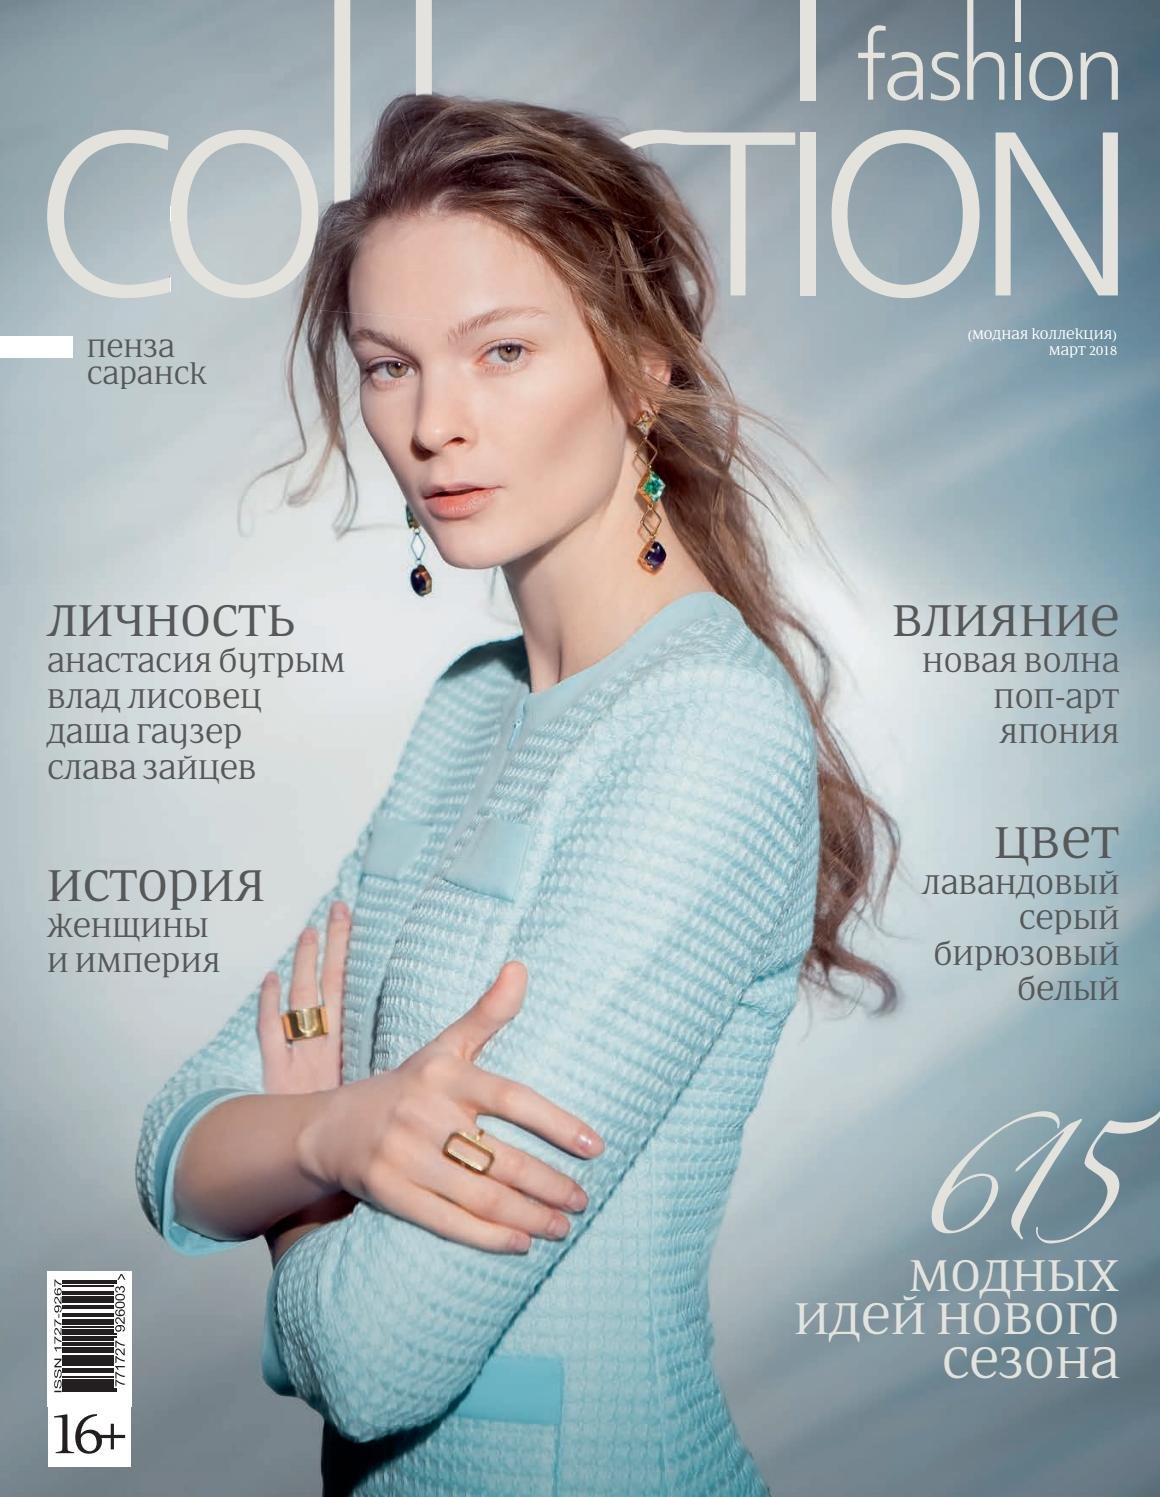 Fashion Сollection Penza March 2018 by Fashion Collection Пенза - issuu 0c4a991b3ac